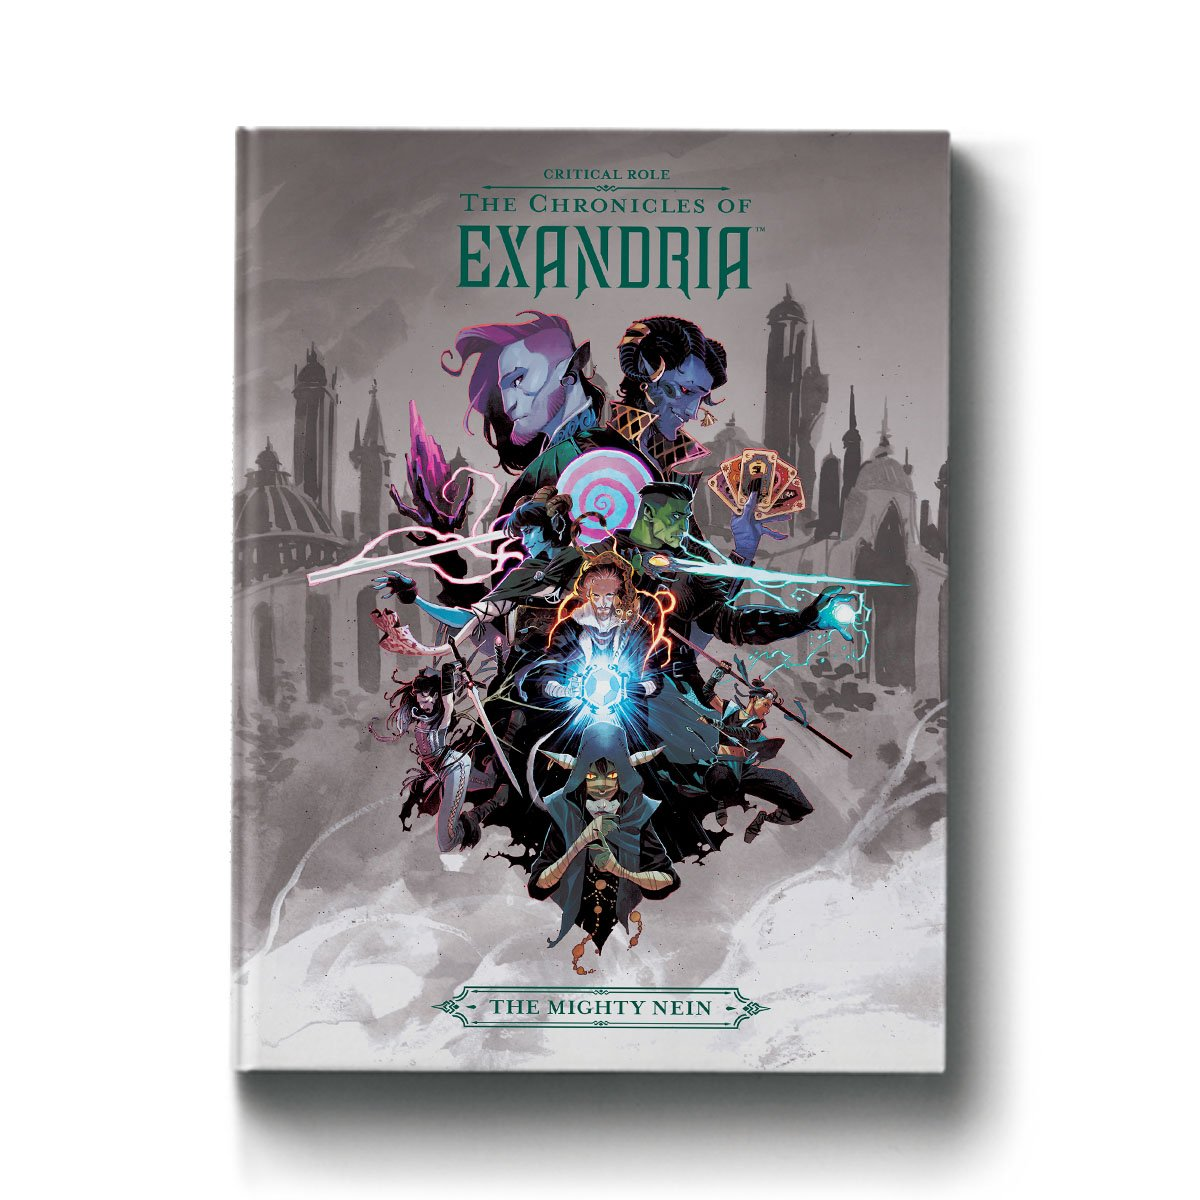 Cover art from Chronicles of Exandria: Mighty Nein